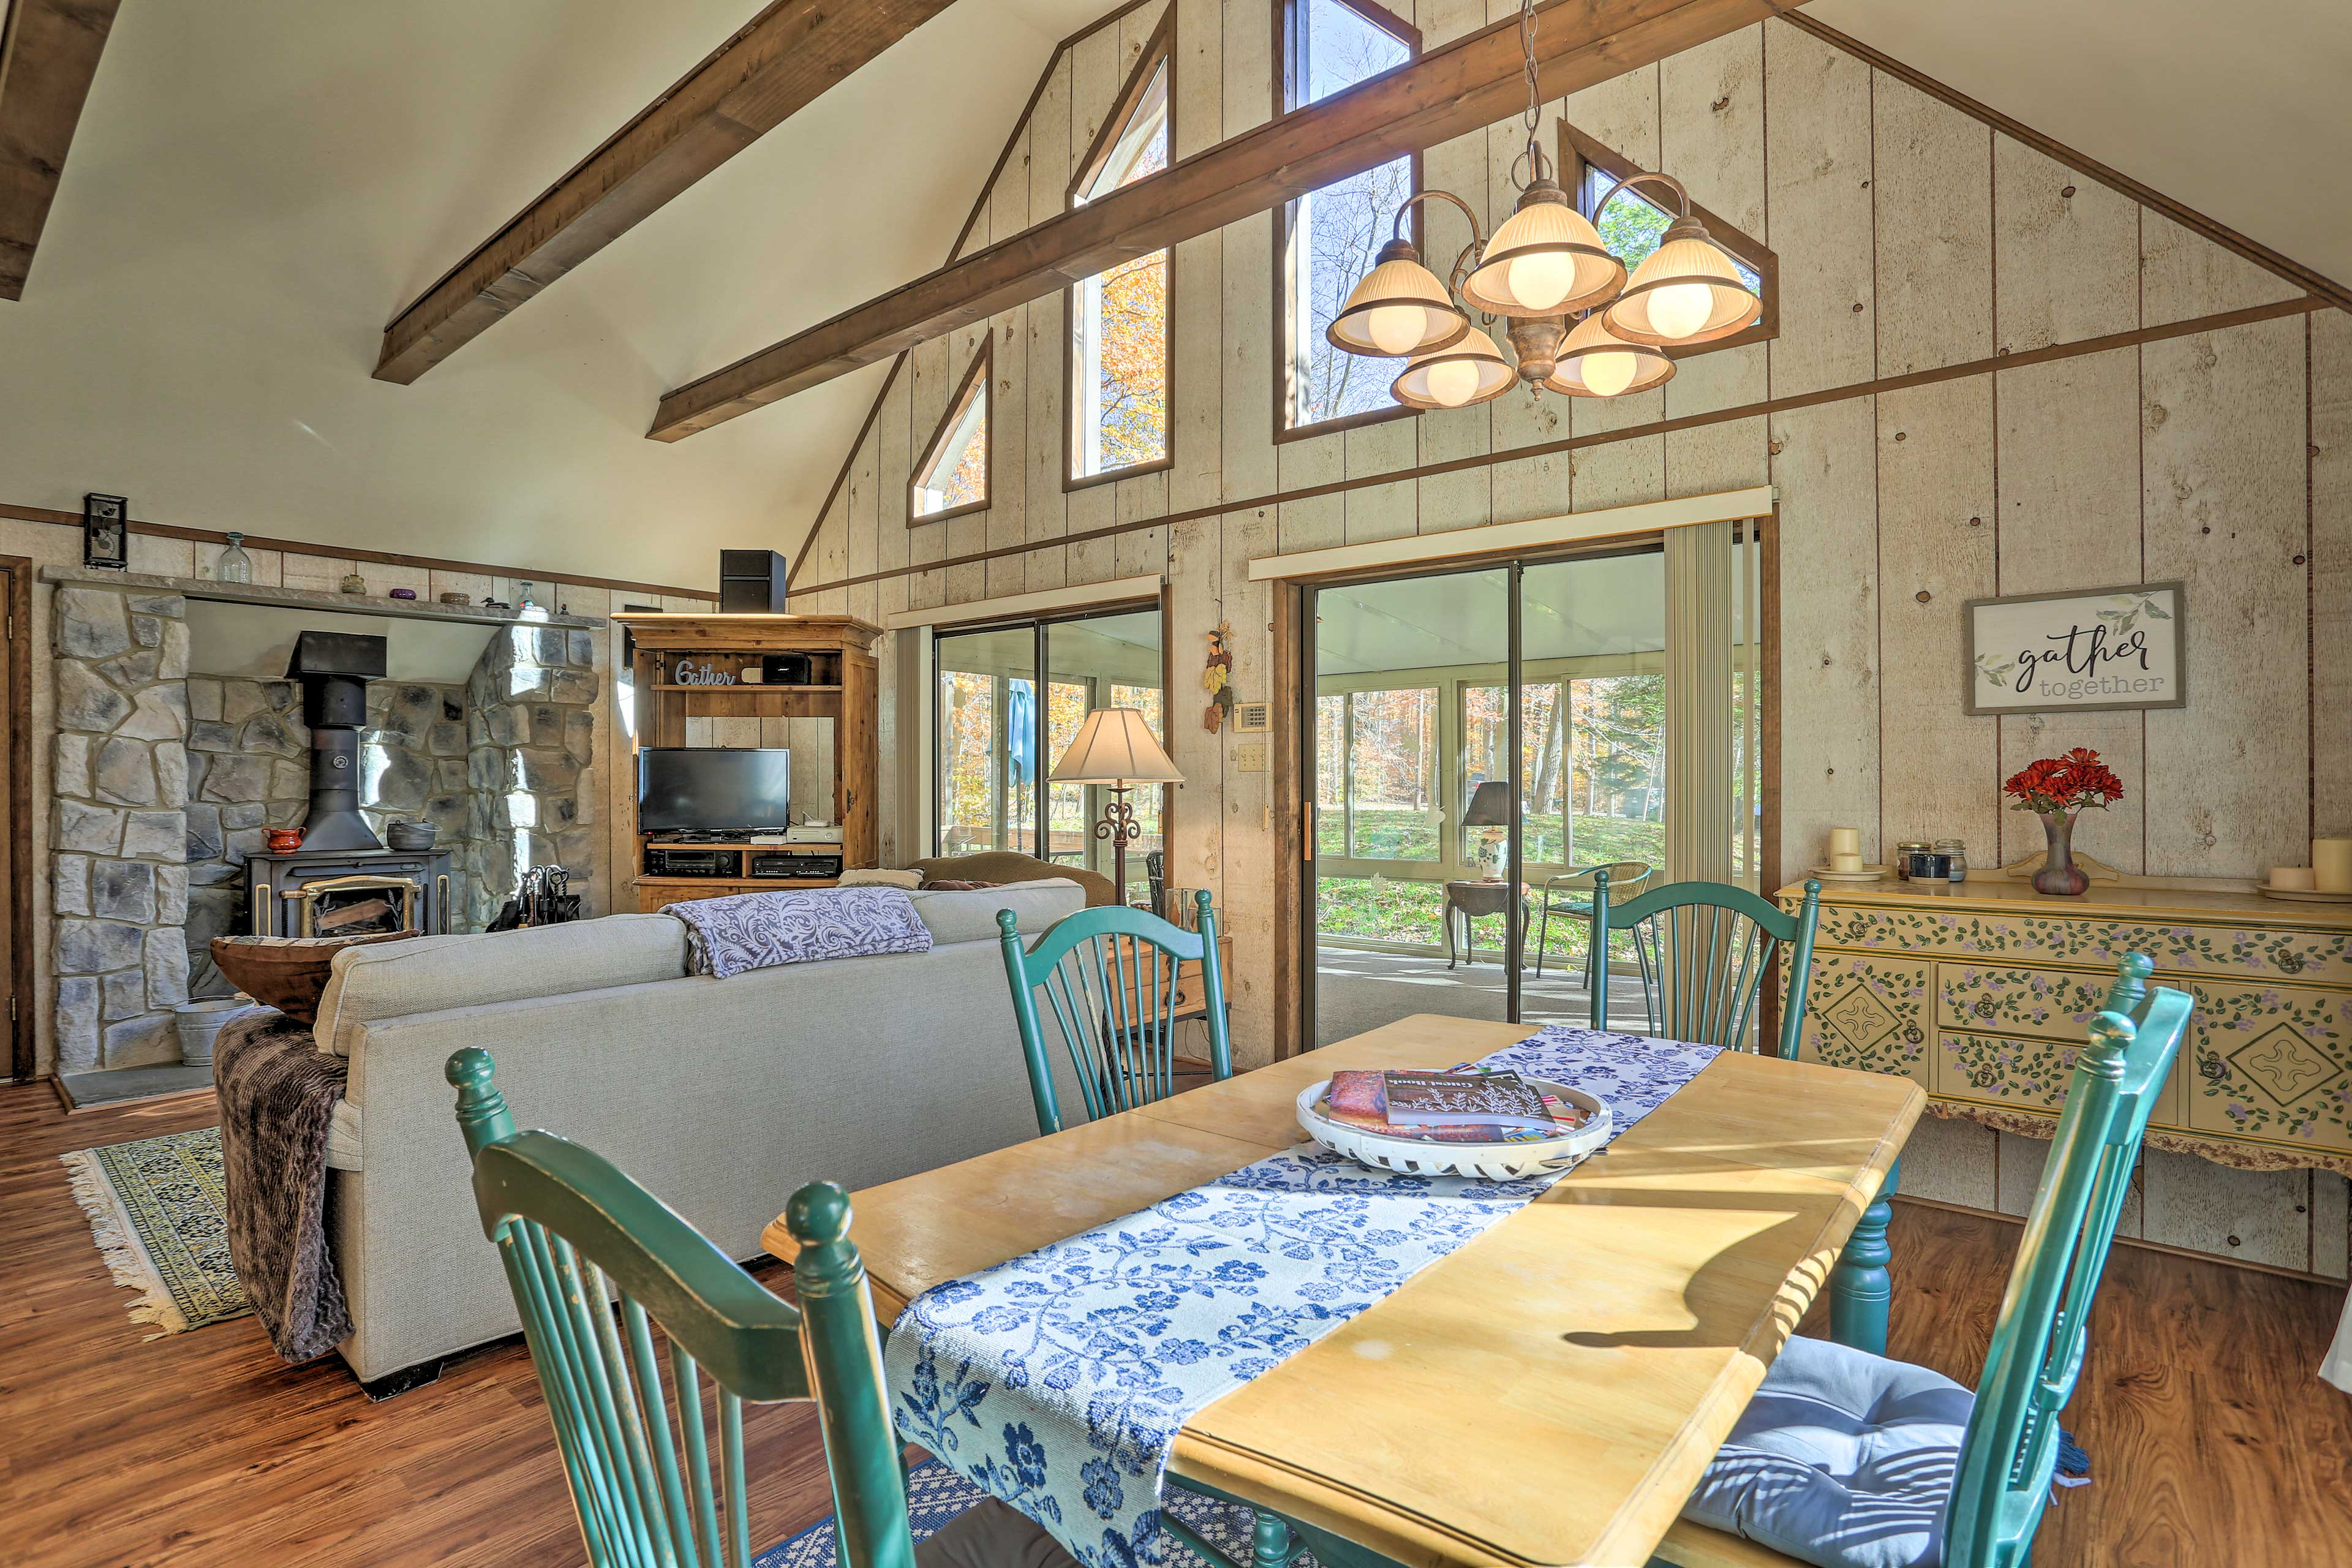 Delight in a home-cooked meal at the dining table or breakfast bar.